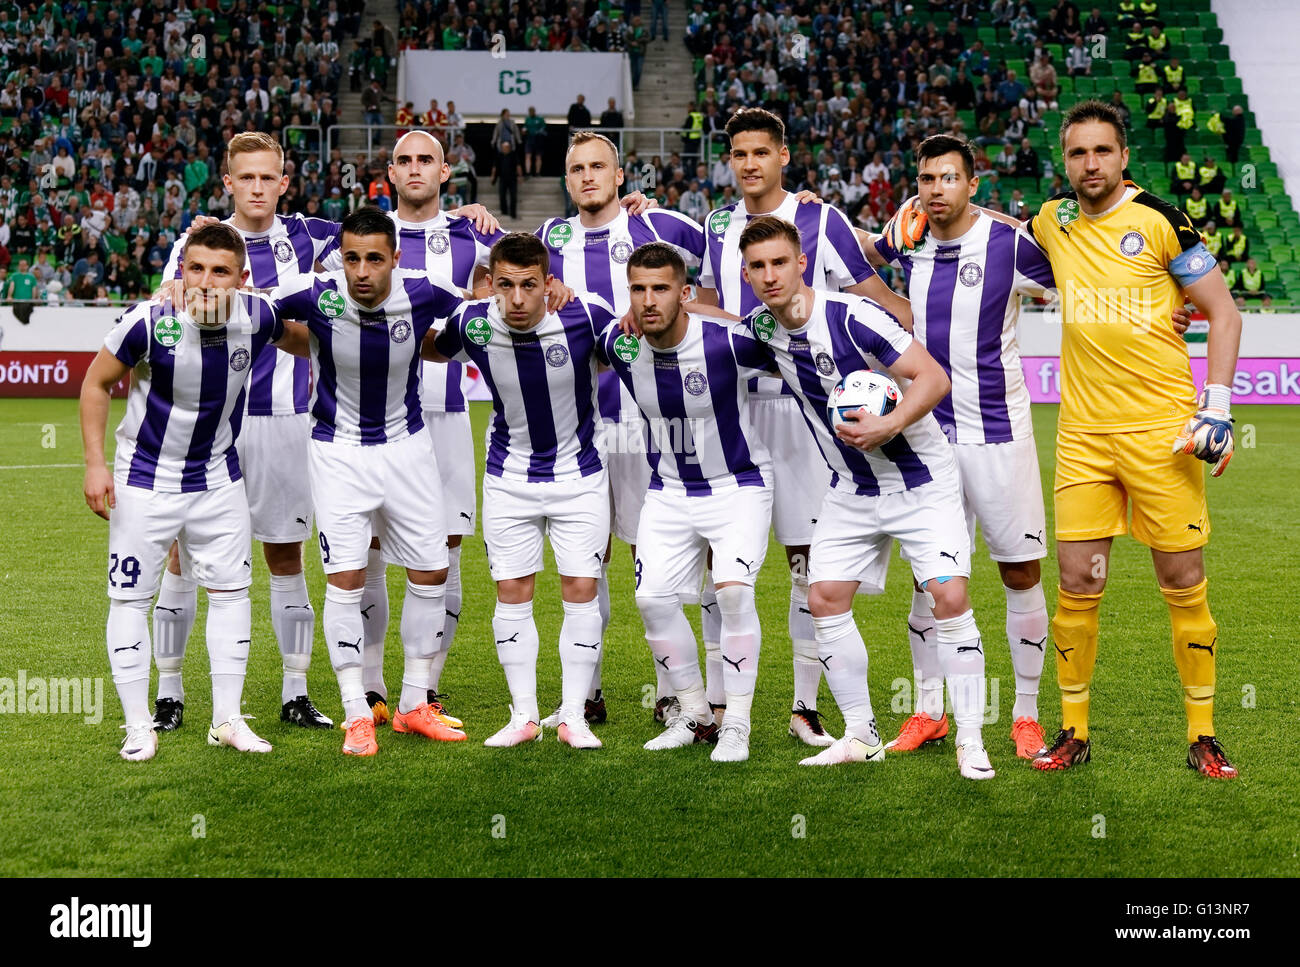 BUDAPEST, HUNGARY - MAY 7, 2016: The team of Ujpest FC